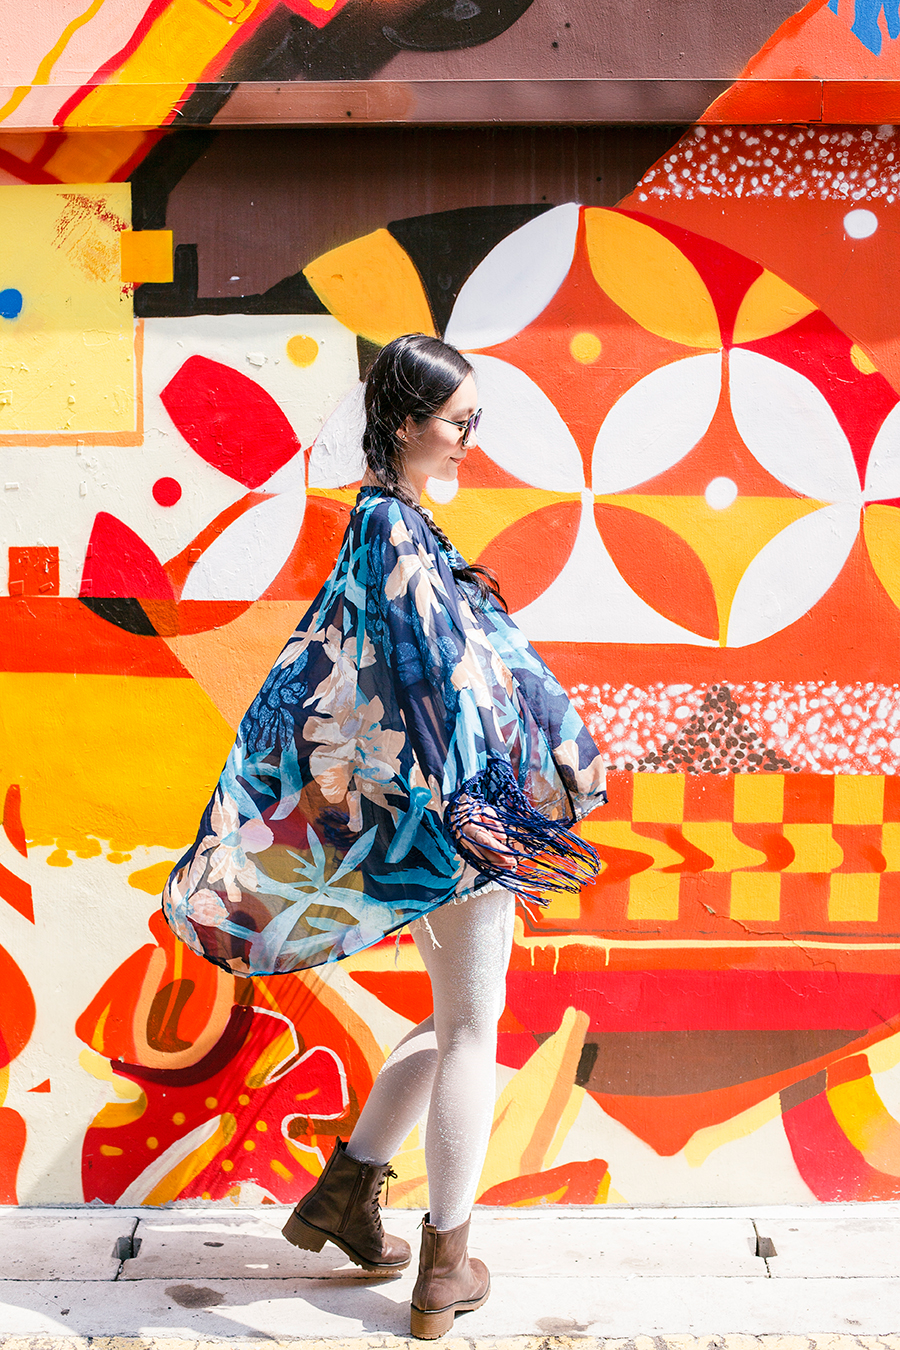 Summer Heat outfit Haji Lane, Singapore: CNDirect blue floral kimono cardigan, CNDirect high waist denim shorts, Shein white mid-sleeve shirt, Steve Madden boots, We Love Colors silver luxe shimmer tights,